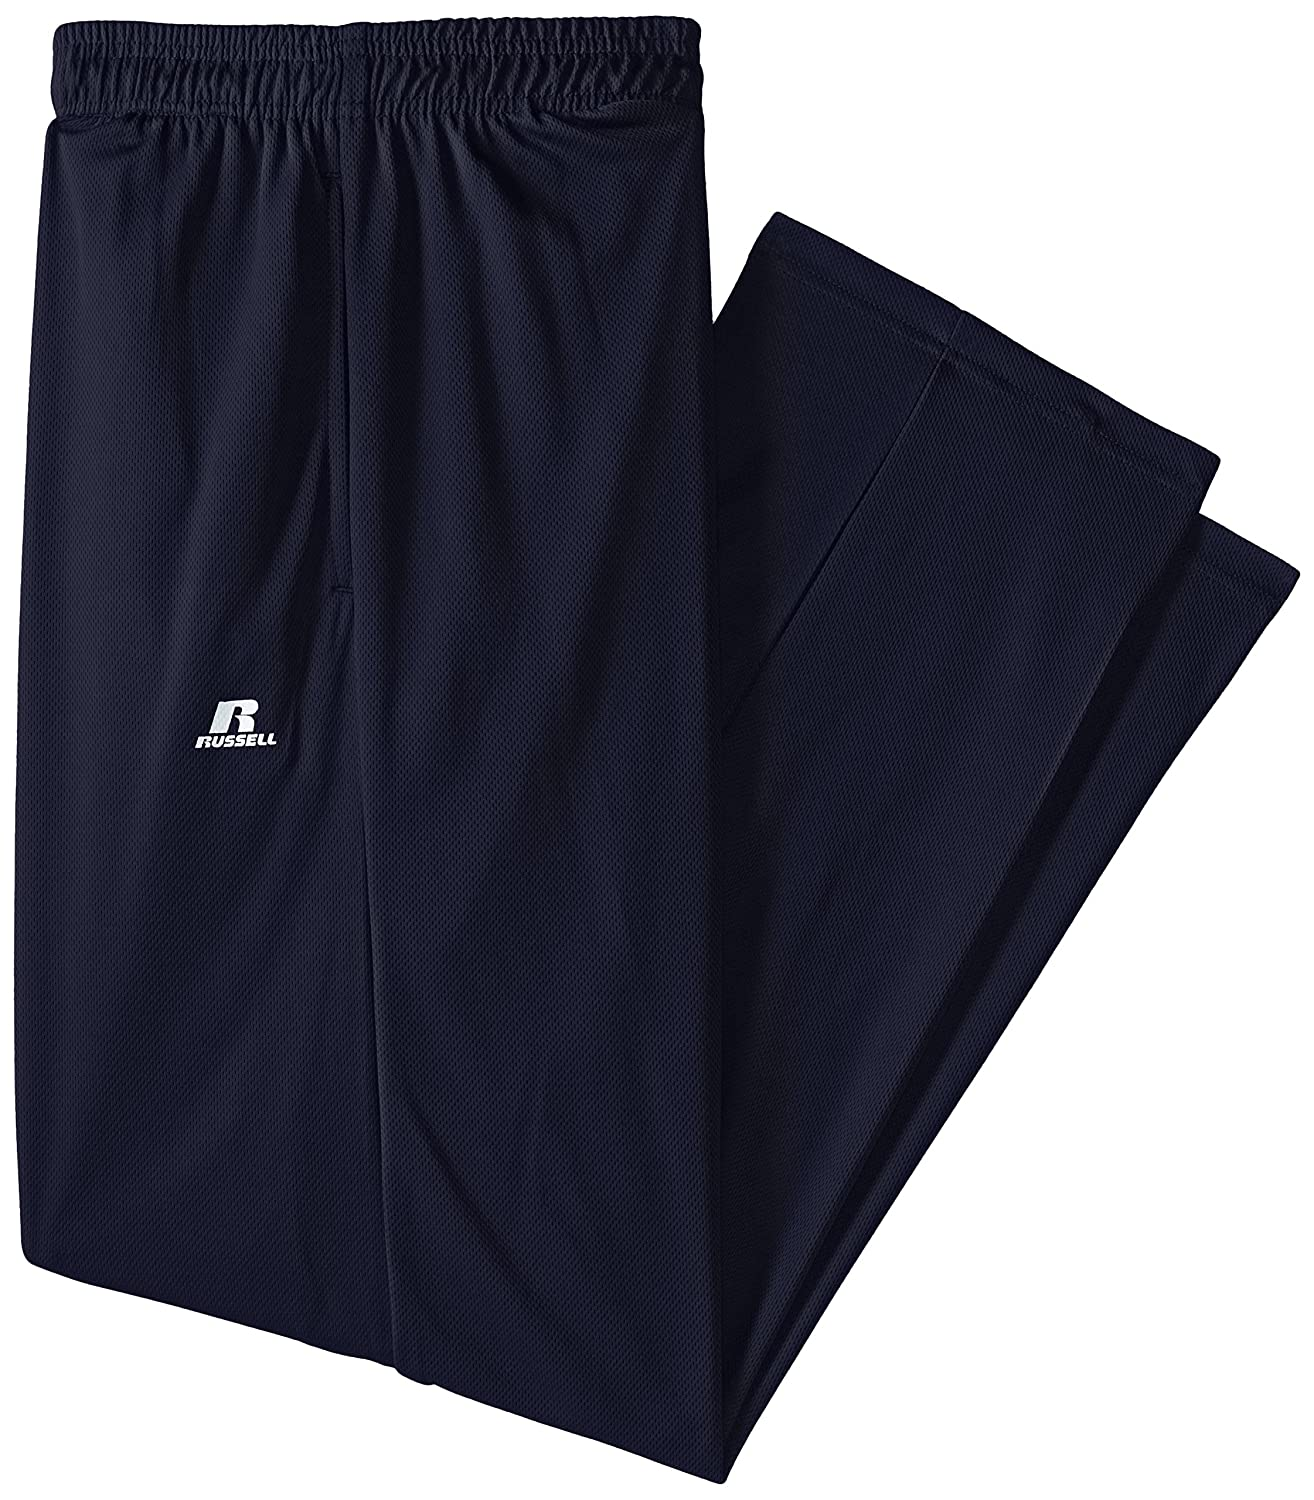 Russell Athletic Men's Big-Tall Solid Dri-Power Pant, Navy, Large Tall RDPP195